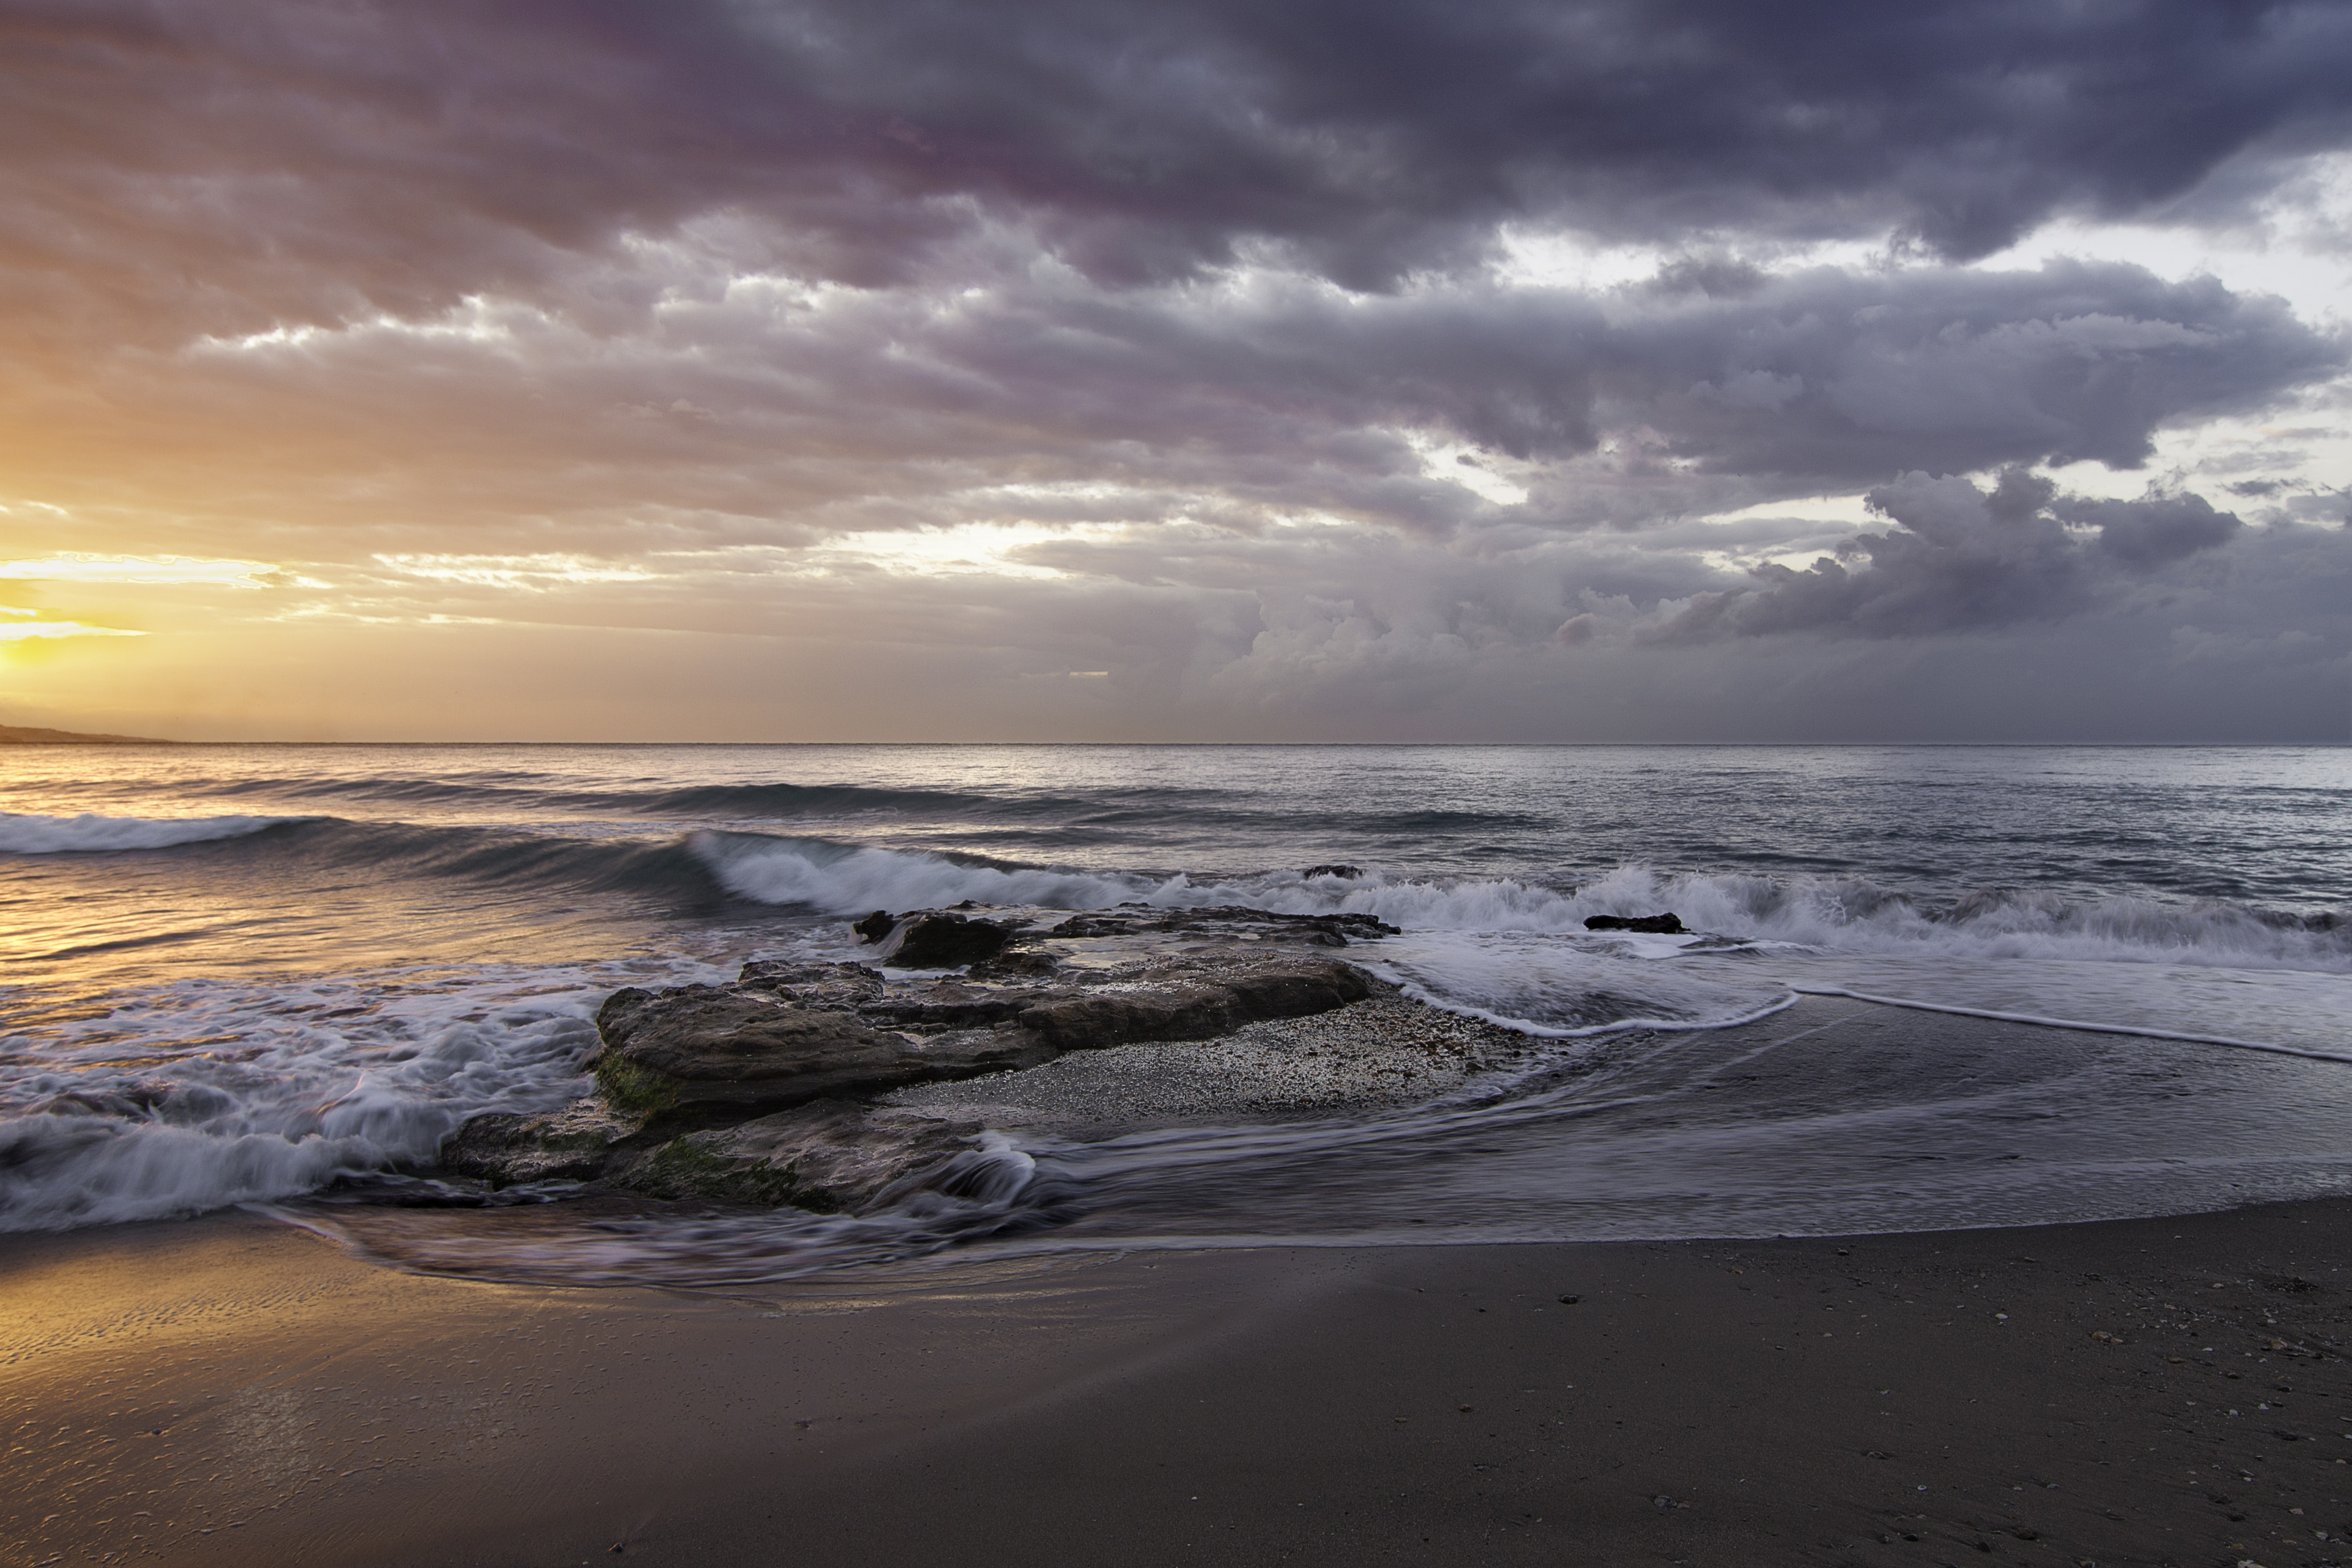 Overlapping waves on a beach with a stormy orange and grey sky at sunset.